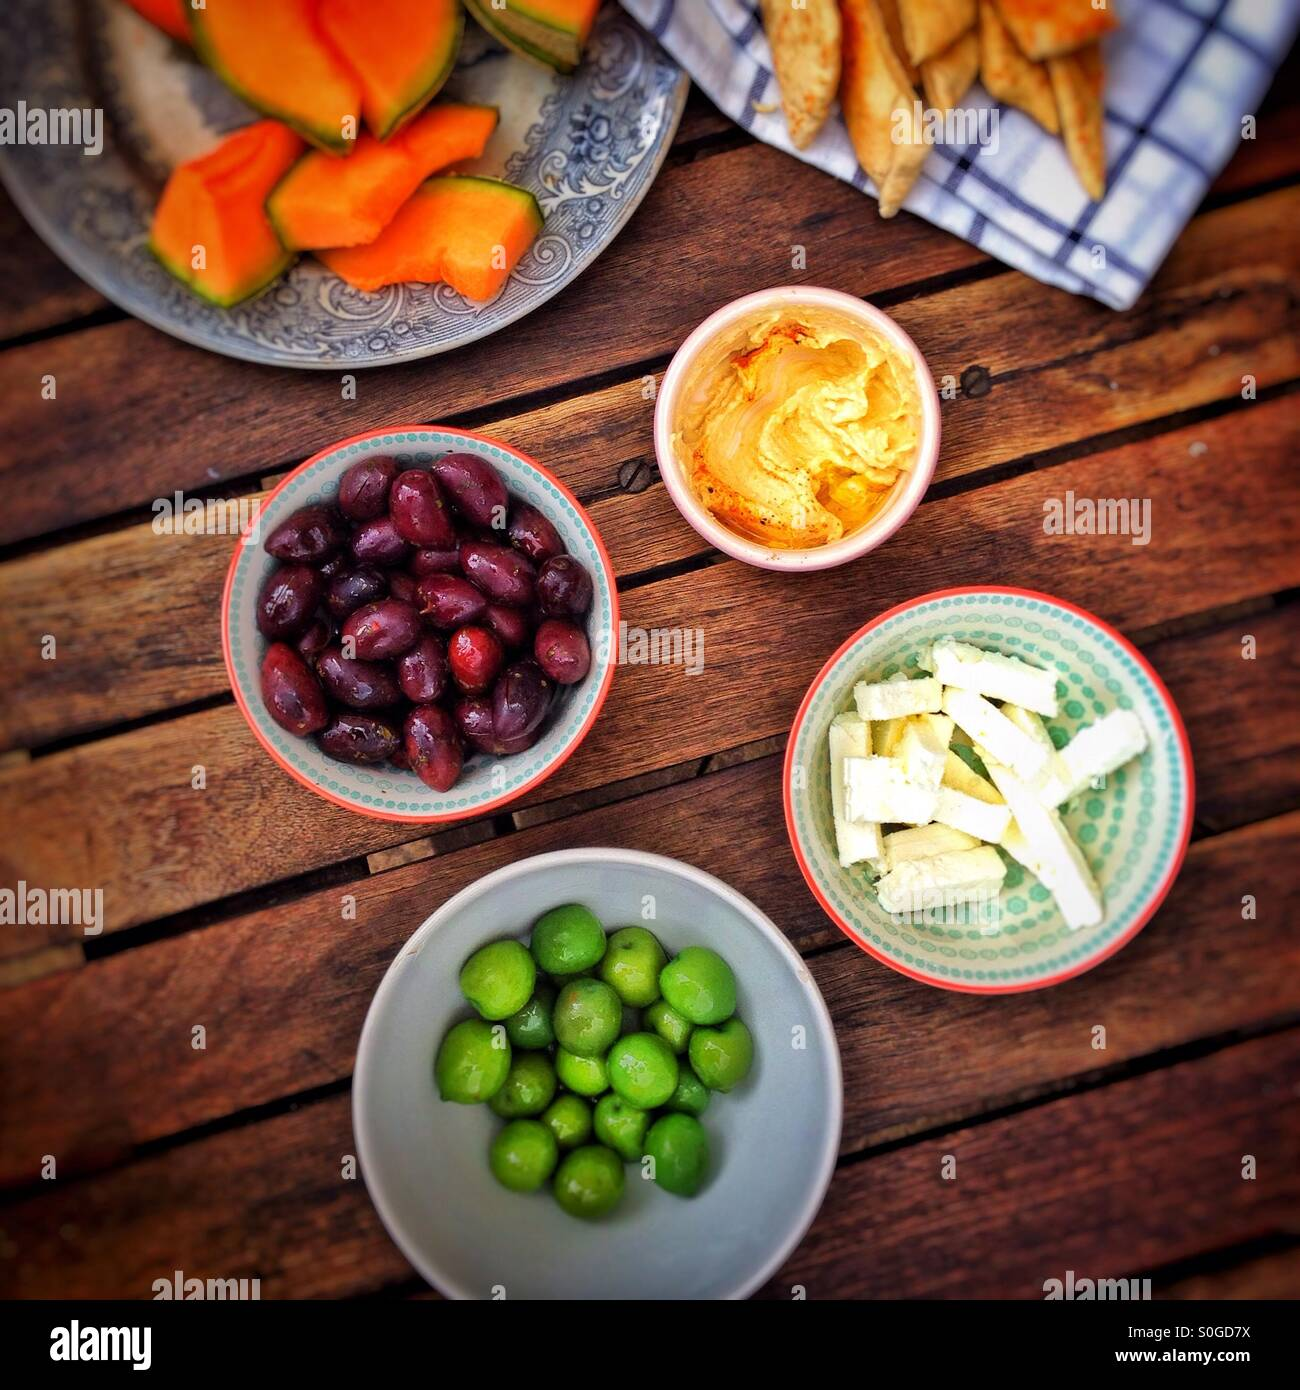 Olives, houmous, cheese and melon on a wooden table - Stock Image